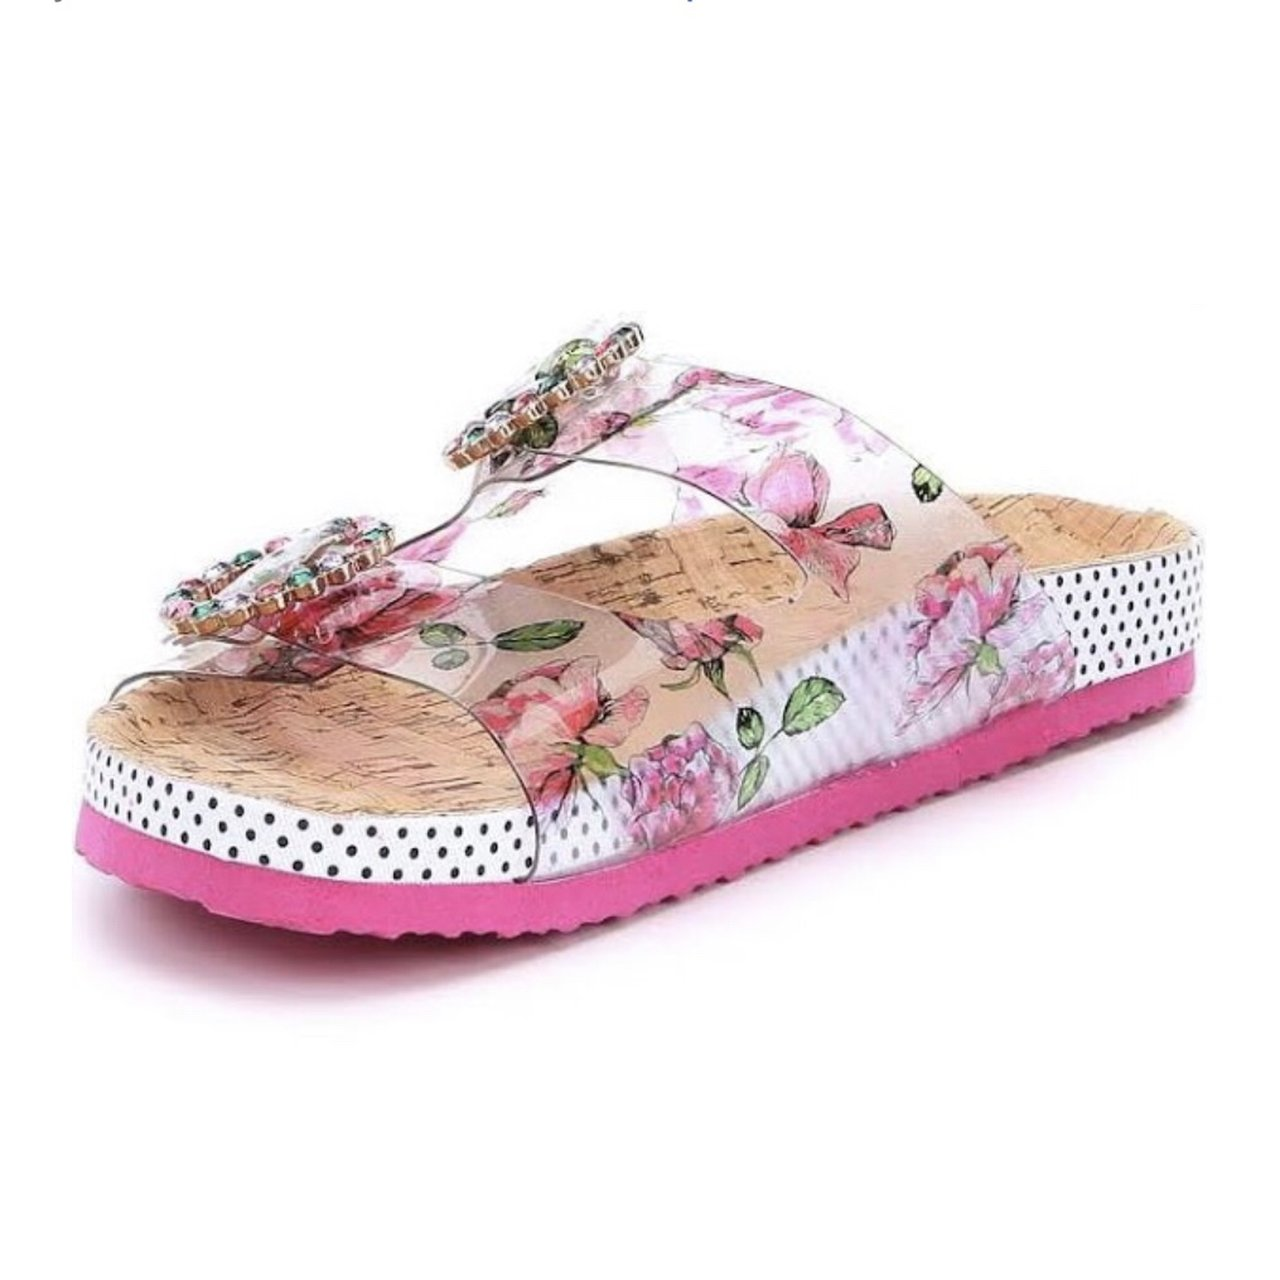 2b701cca6e8e New never worn Betsy Johnson clear floral print slide into - Depop